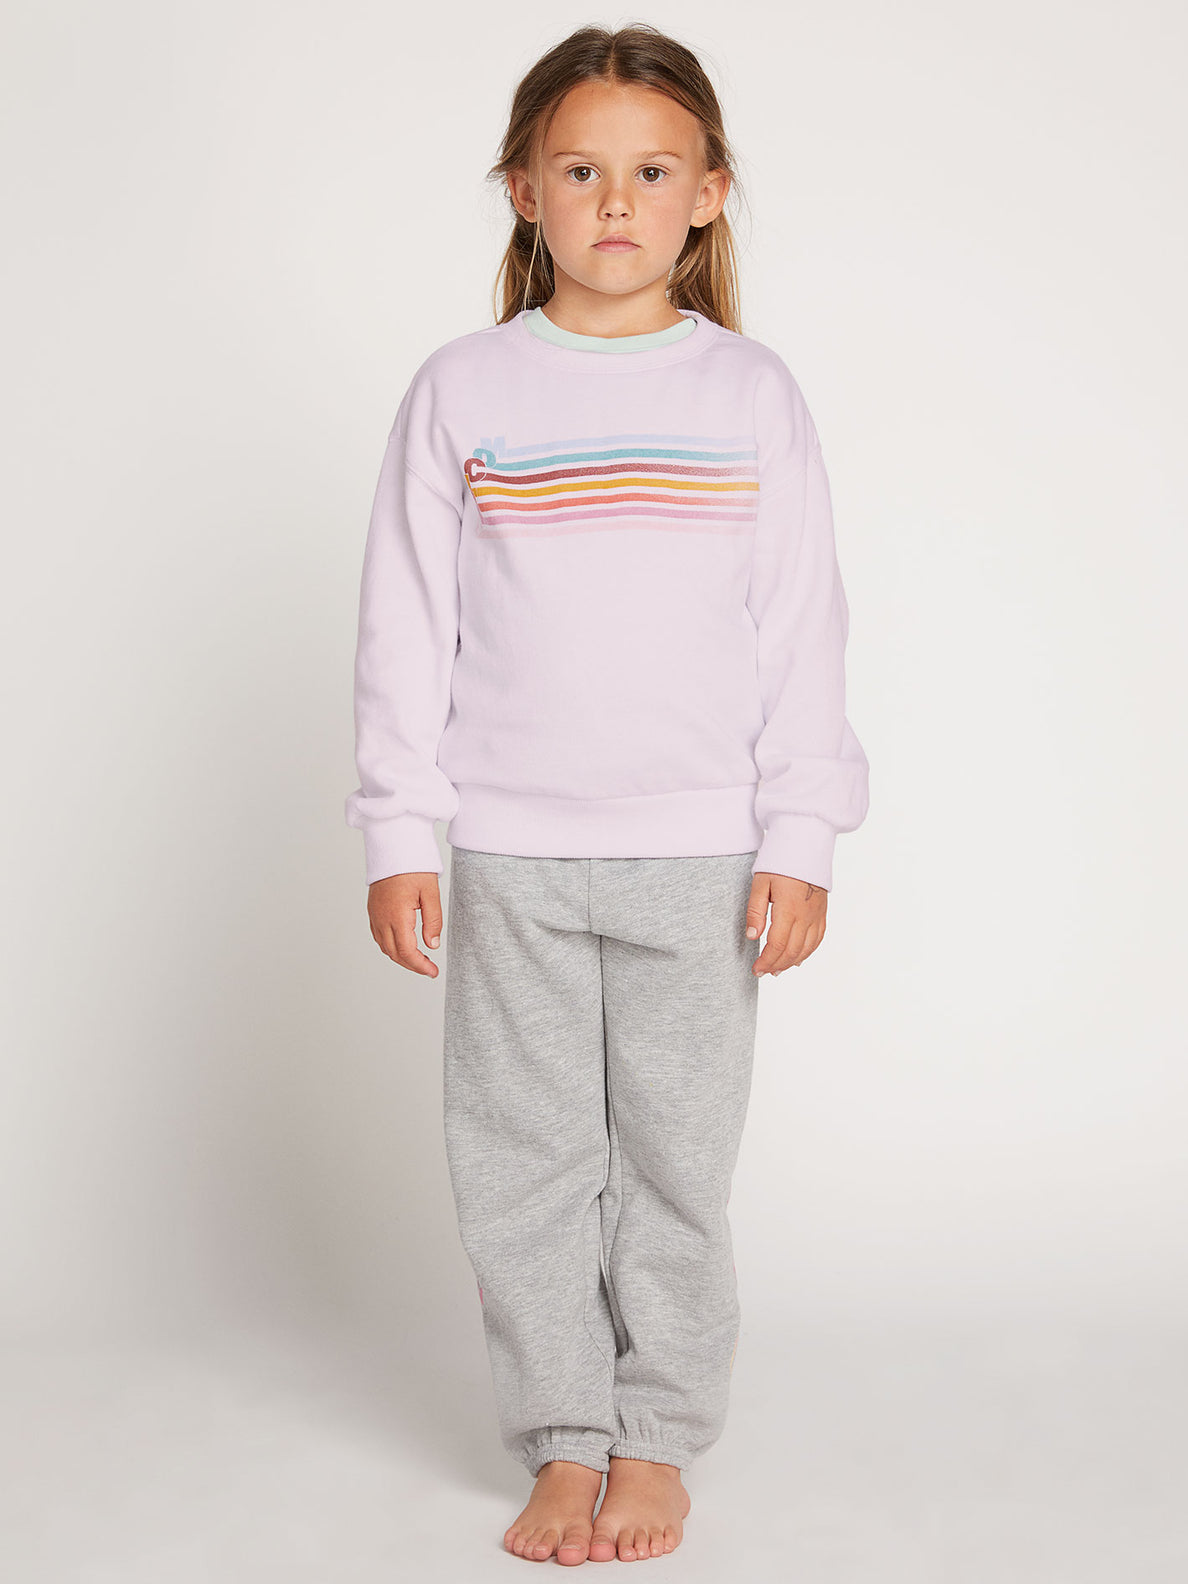 Little Girls Darting Traffic Crew Sweatshirt In Blush Pink, Front View